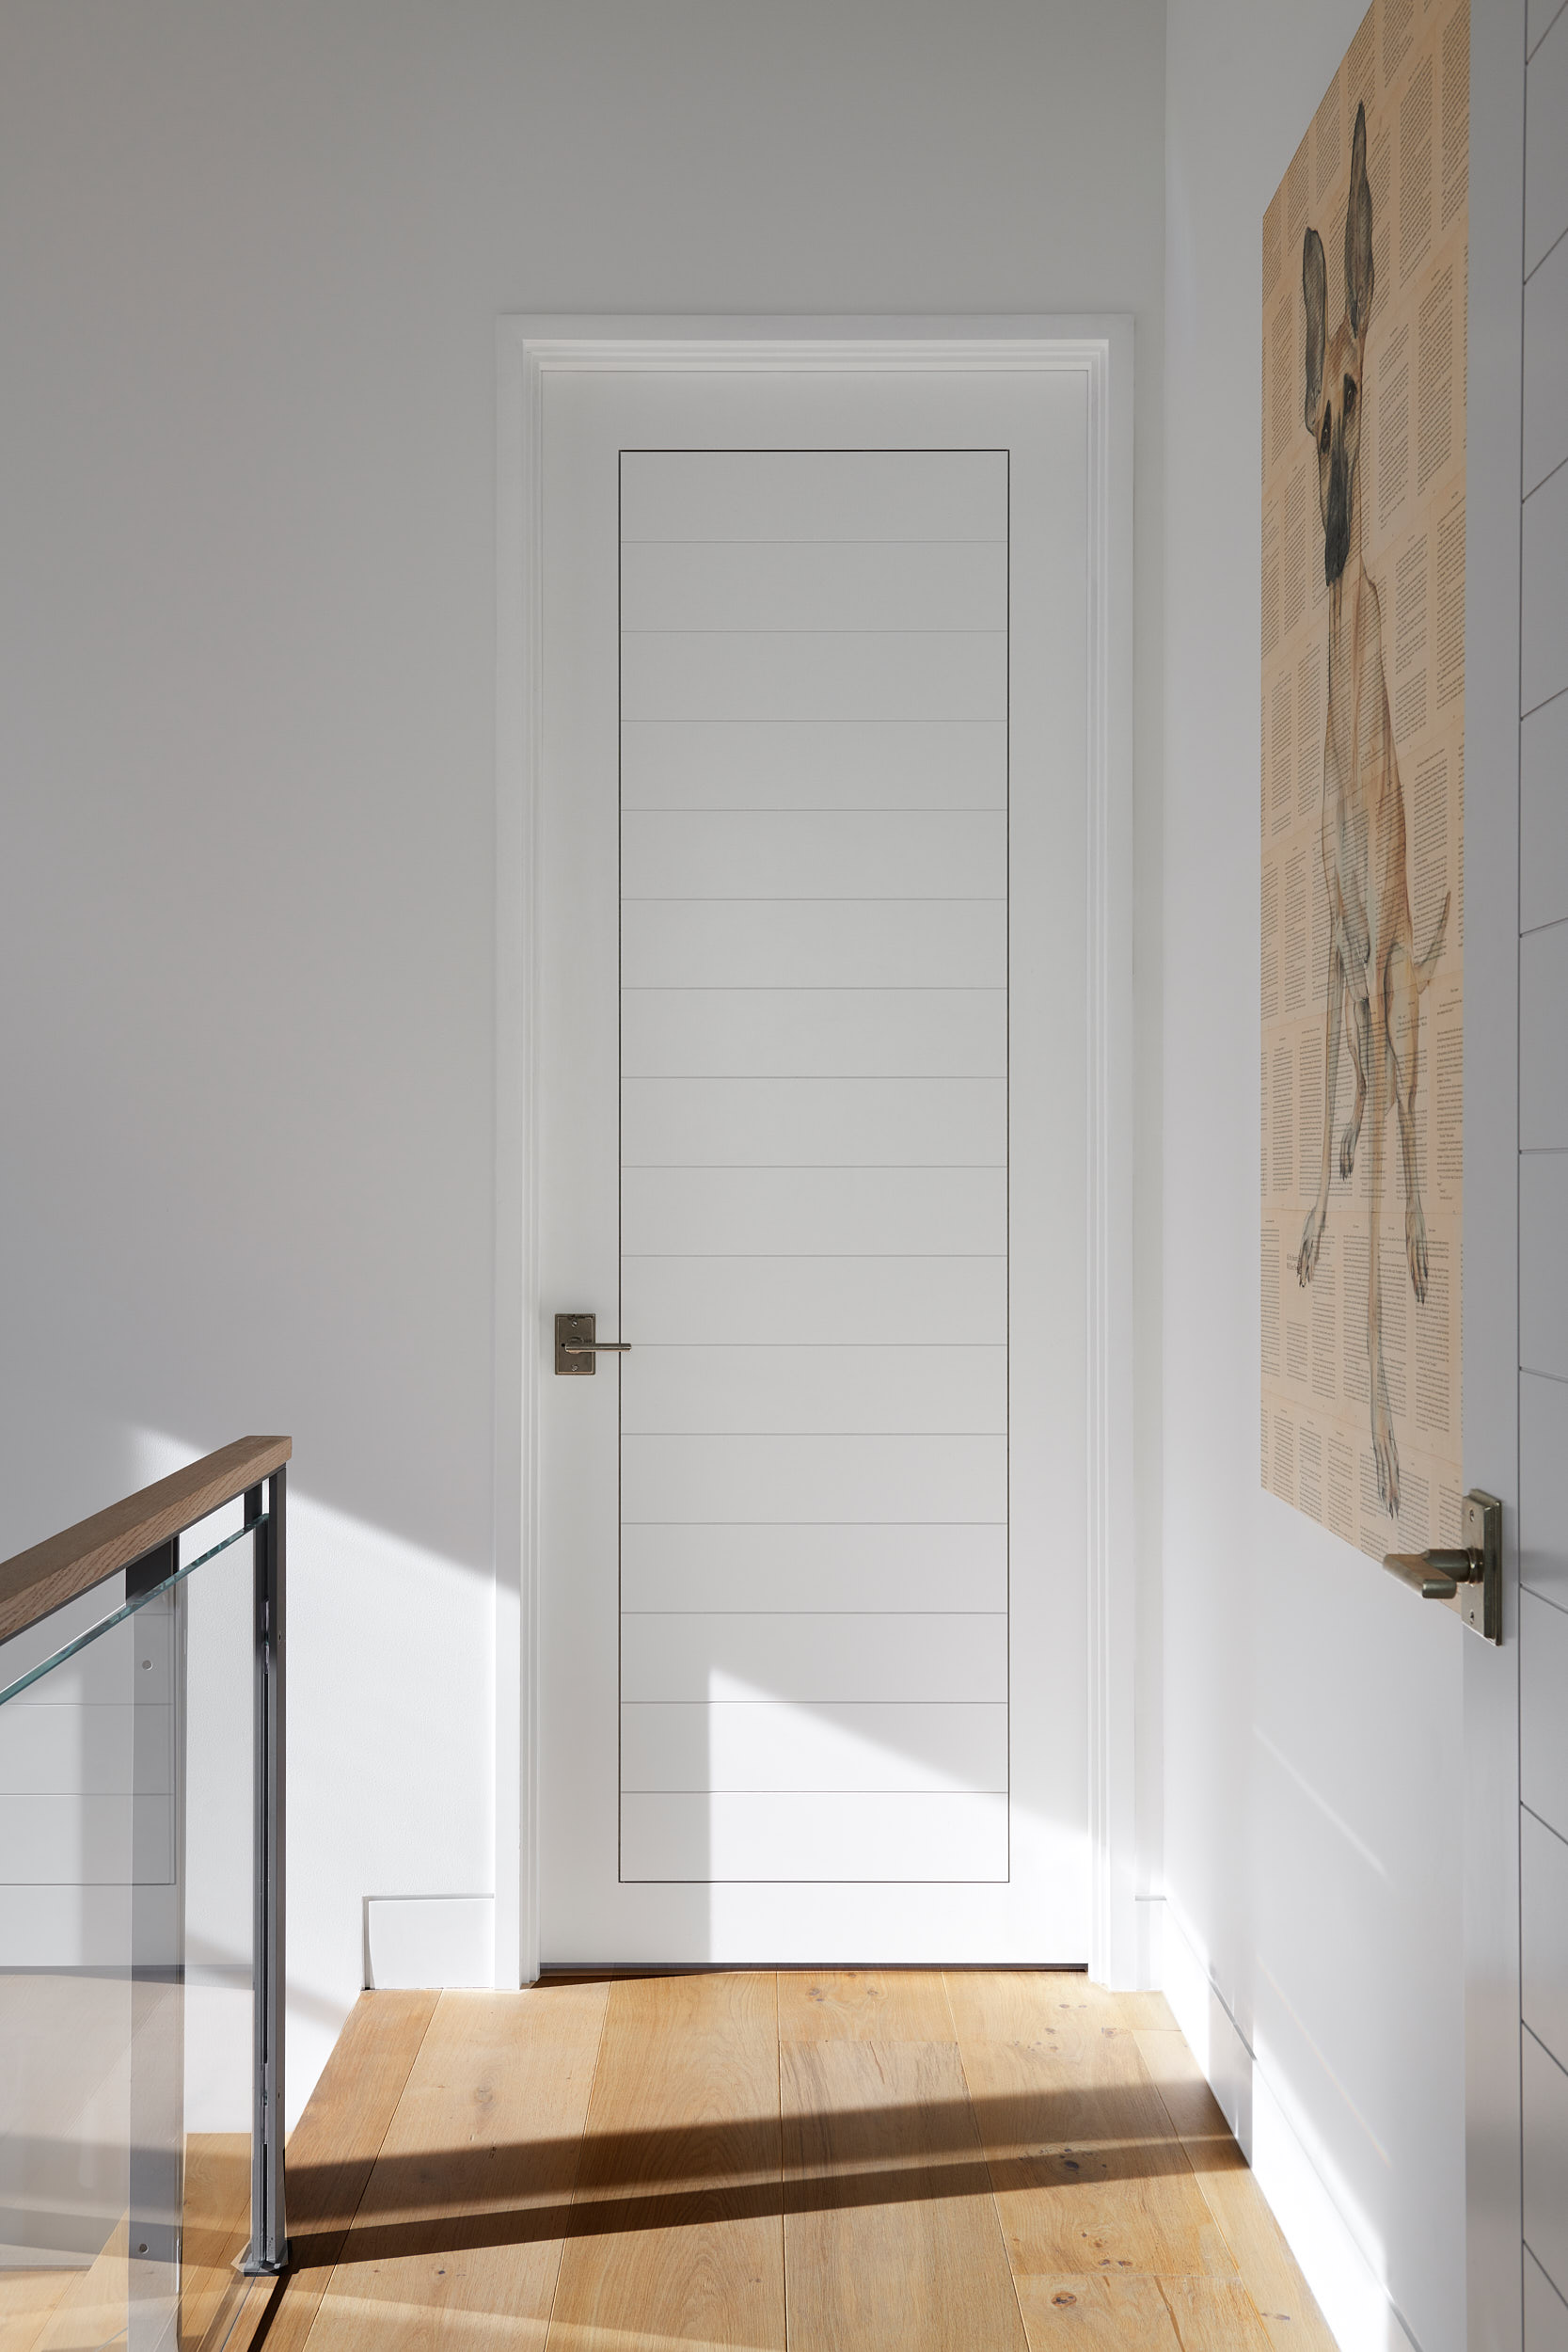 Joe Friend Photography | Architectural Photography | Castlewood Doors